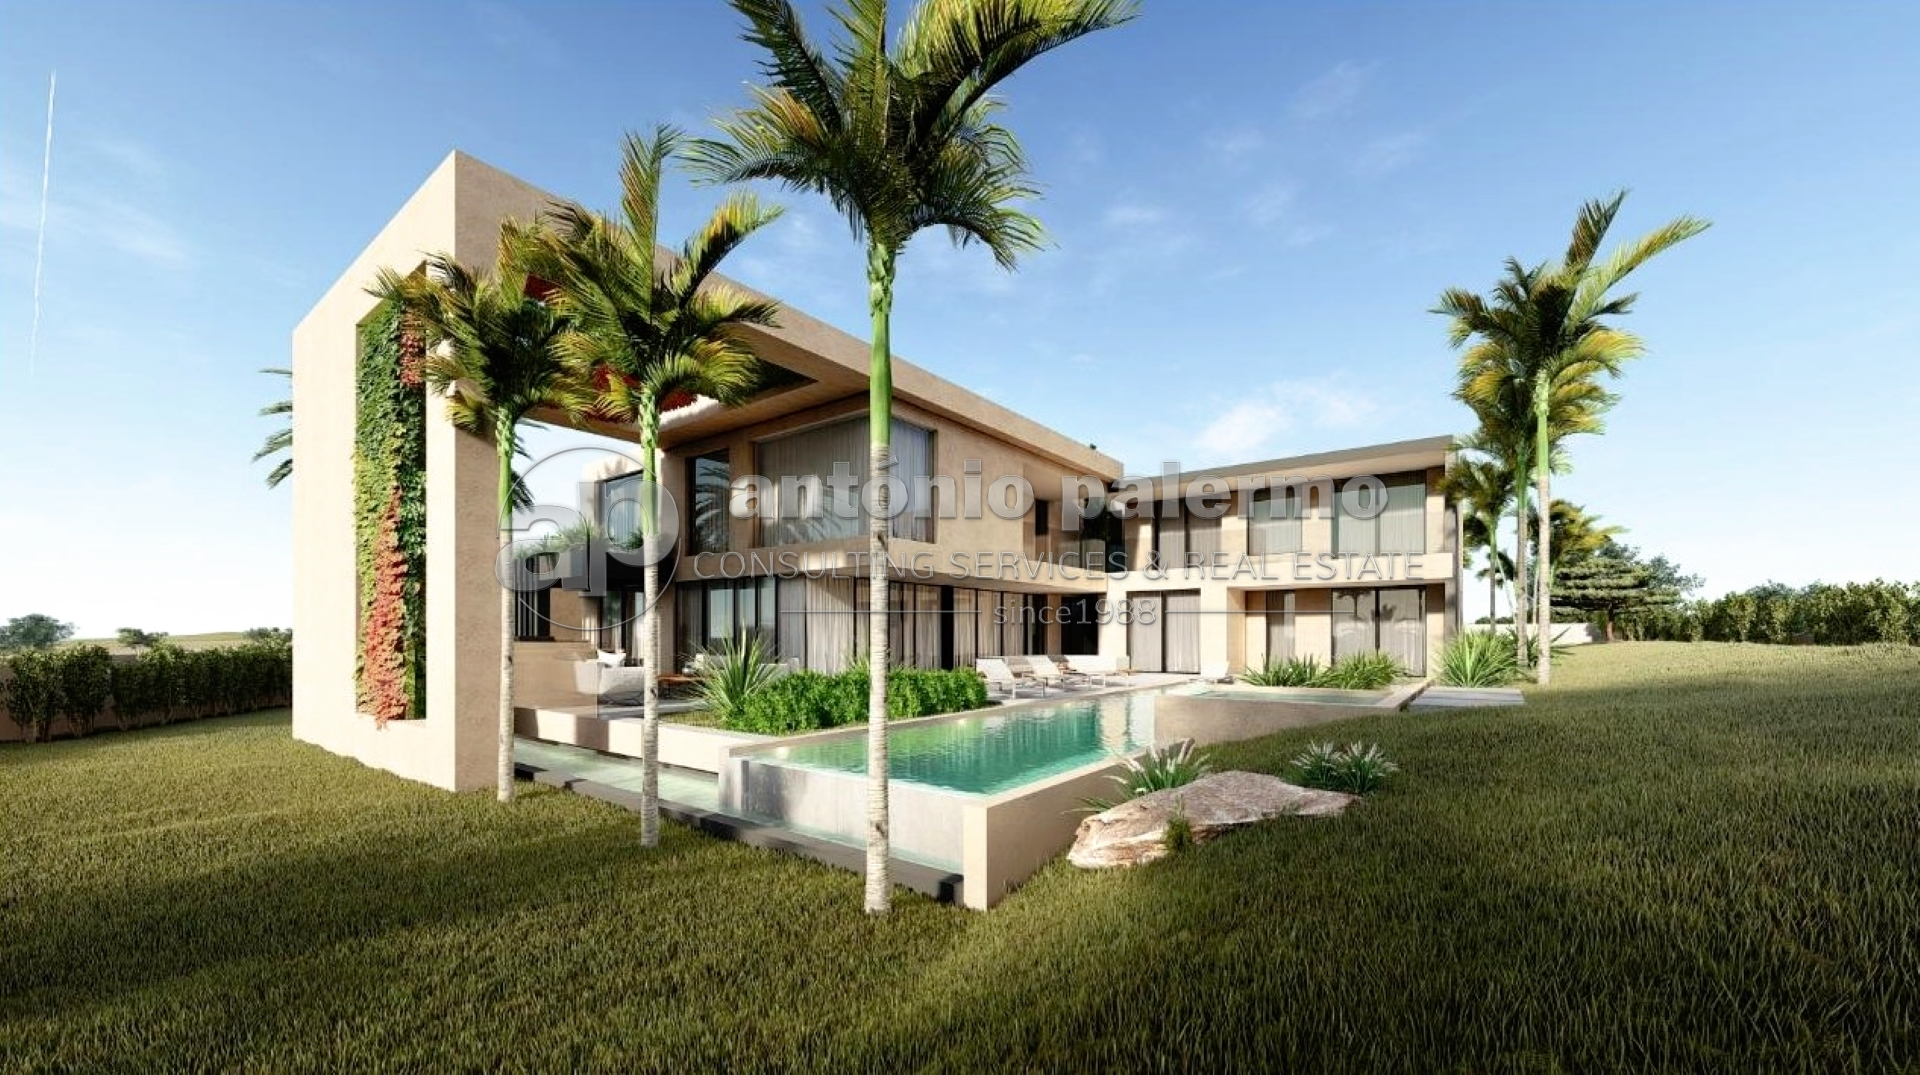 An exceptional contemporary 5-bedroom villa for sale